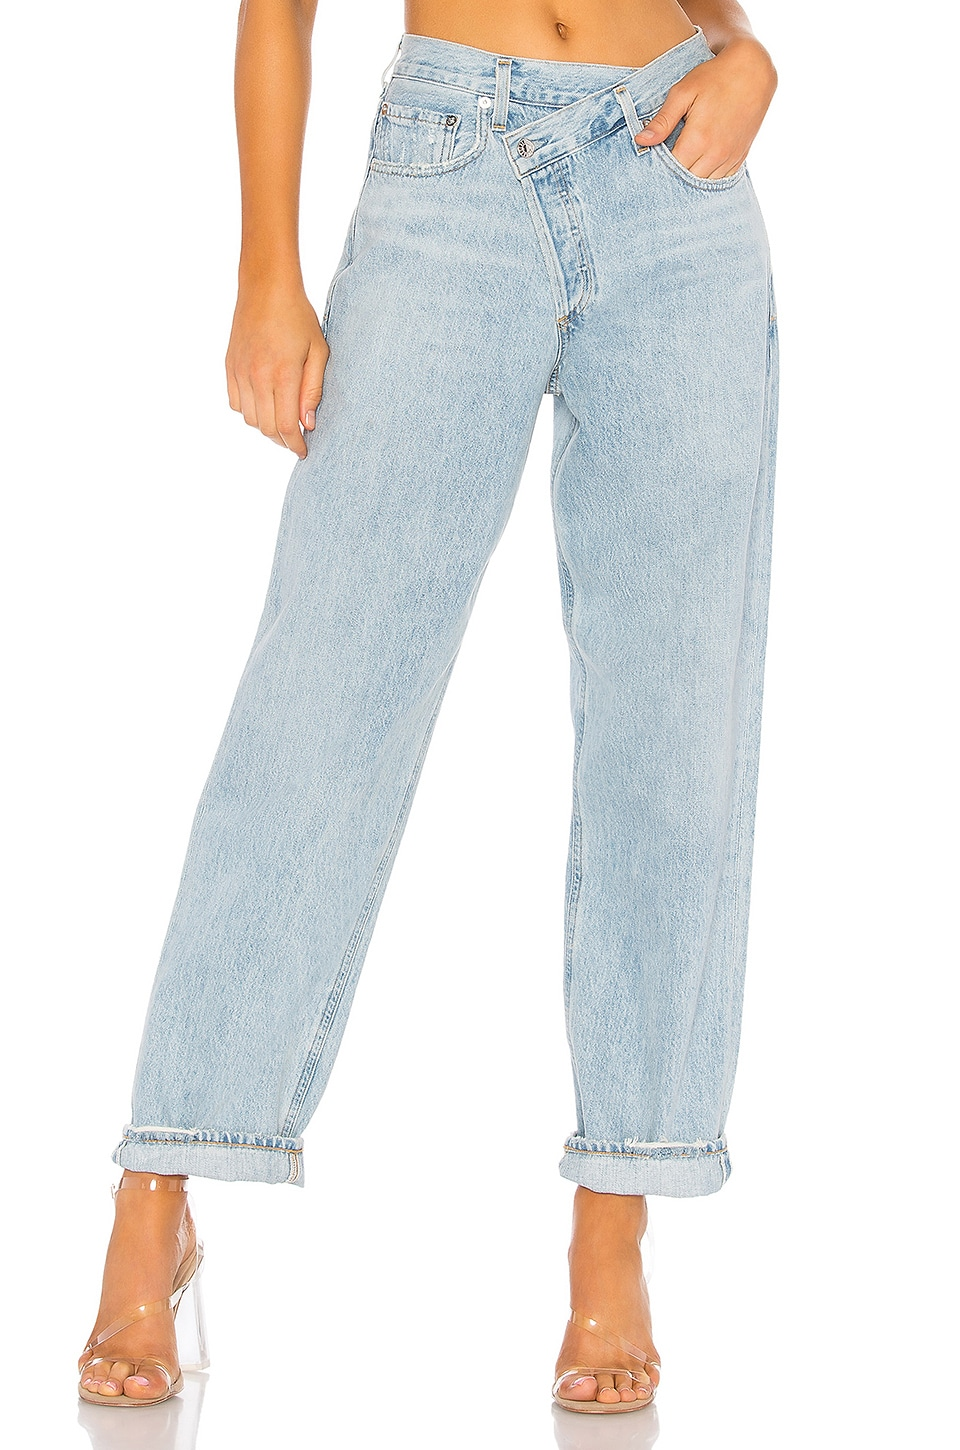 Criss Cross Upsized Jean                     AGOLDE 5